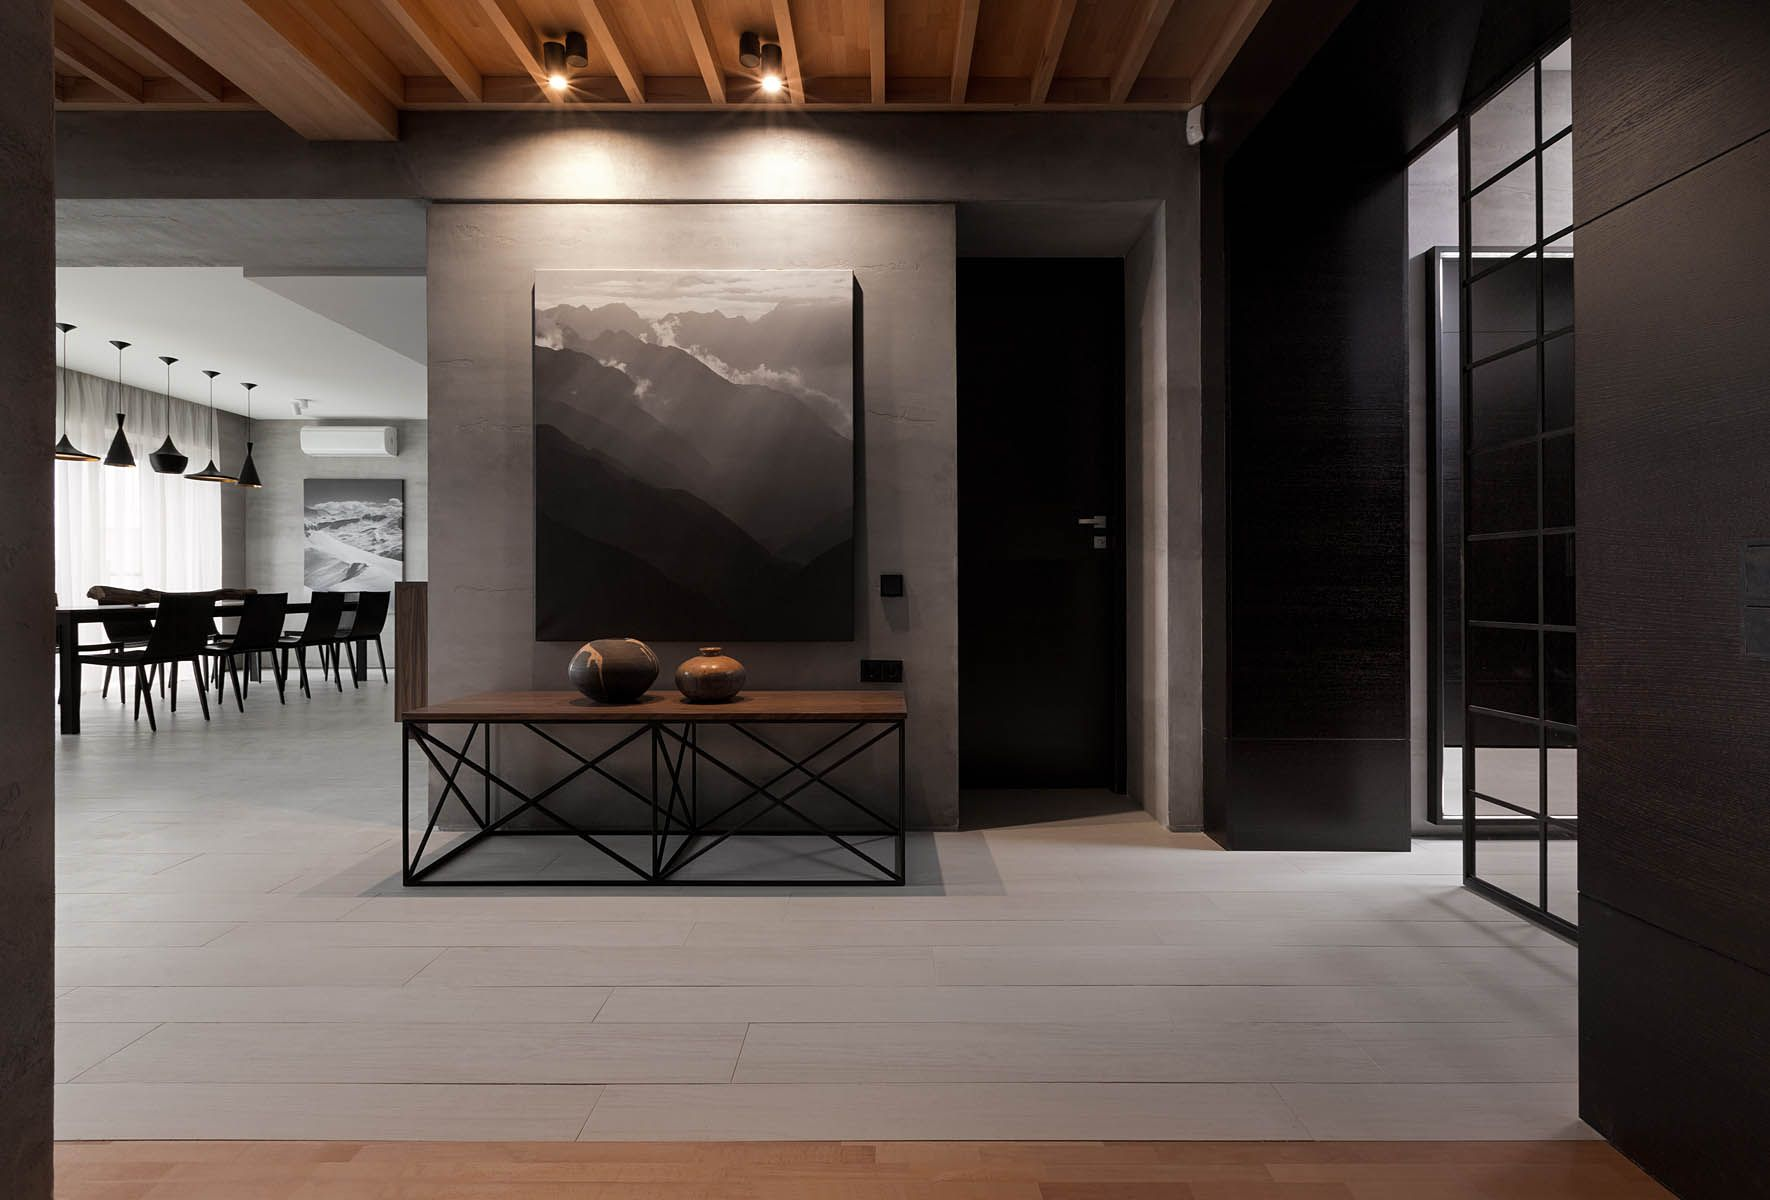 Modern Interieur Herenhuis : N o t t d e s i g n pindi in interieur